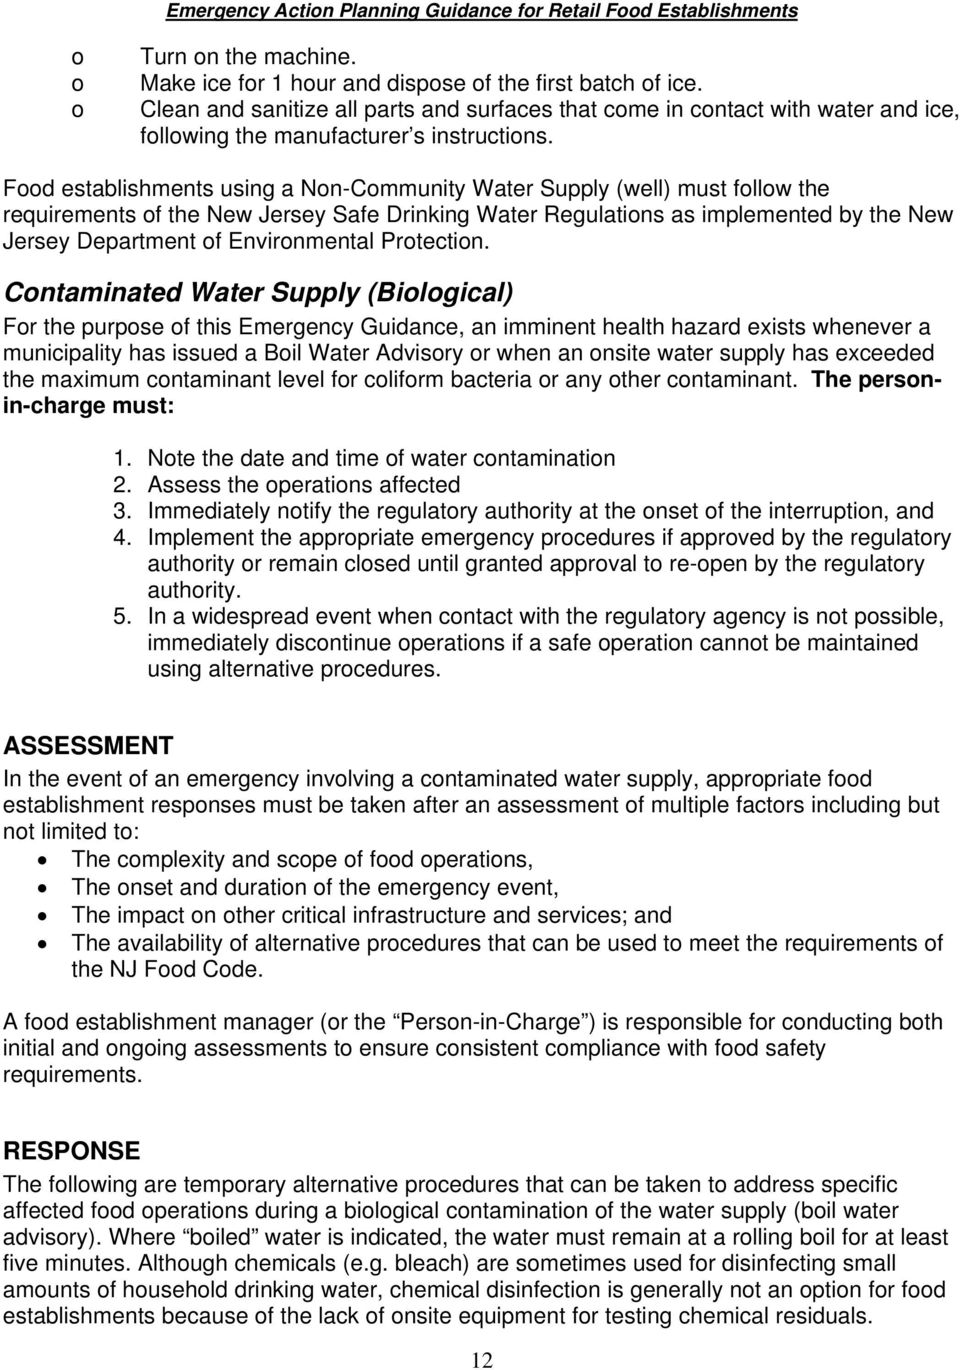 Food establishments using a Non-Community Water Supply (well) must follow the requirements of the New Jersey Safe Drinking Water Regulations as implemented by the New Jersey Department of